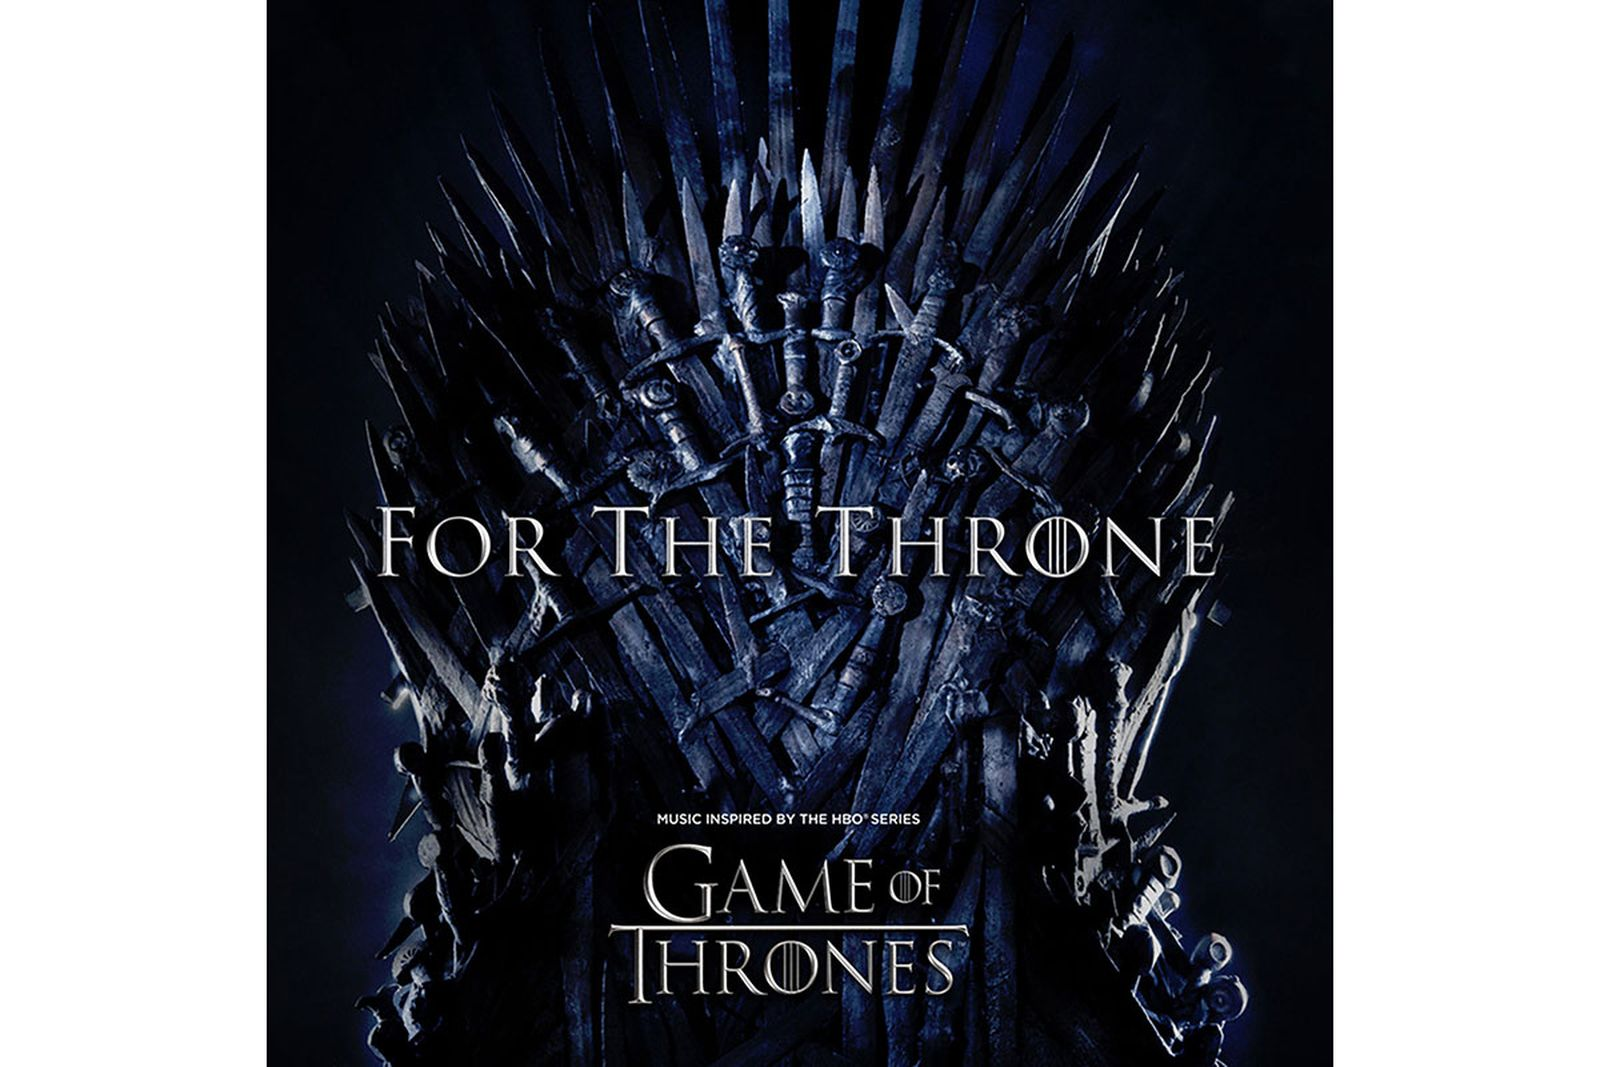 game of thrones for the throne review